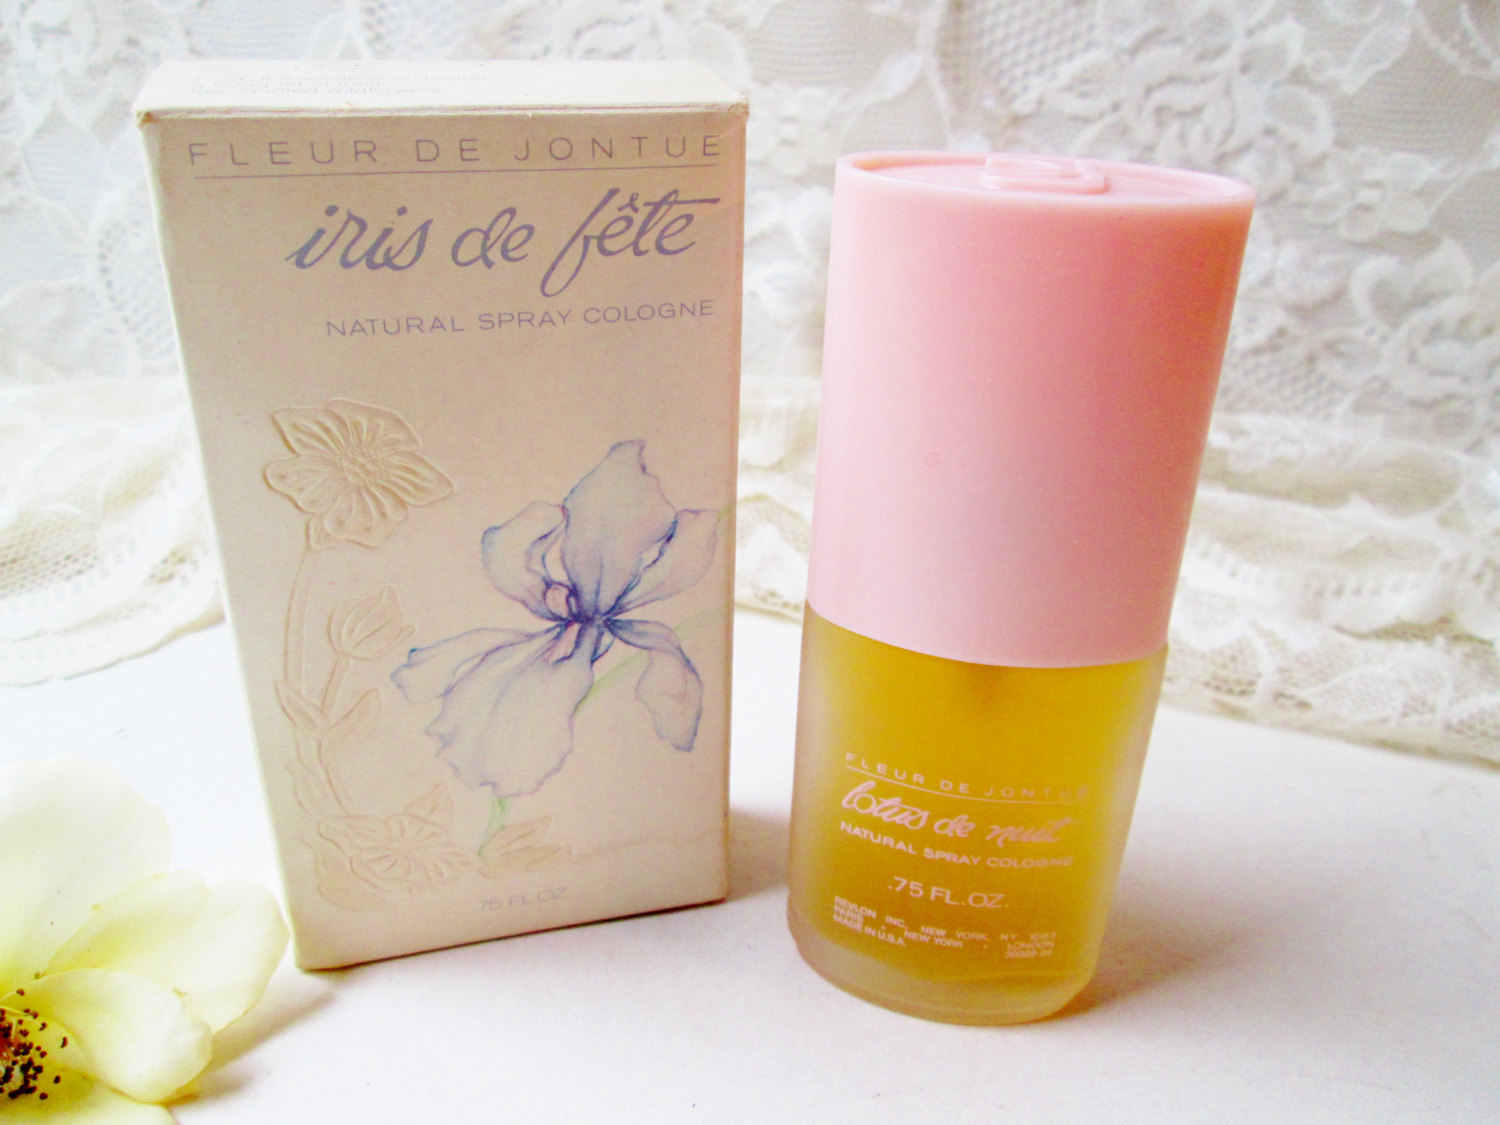 Lotus De Nuit Perfume Spray Vintage Fleur De Jontue Revlon .75oz Natural Spray